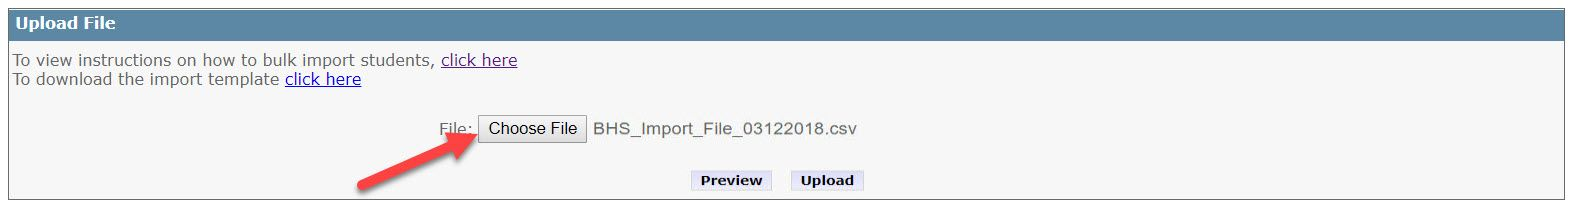 The Student Import page is showing an Upload File prompt. An arrow points to the Choose File button which is located above the Preview and Upload buttons.